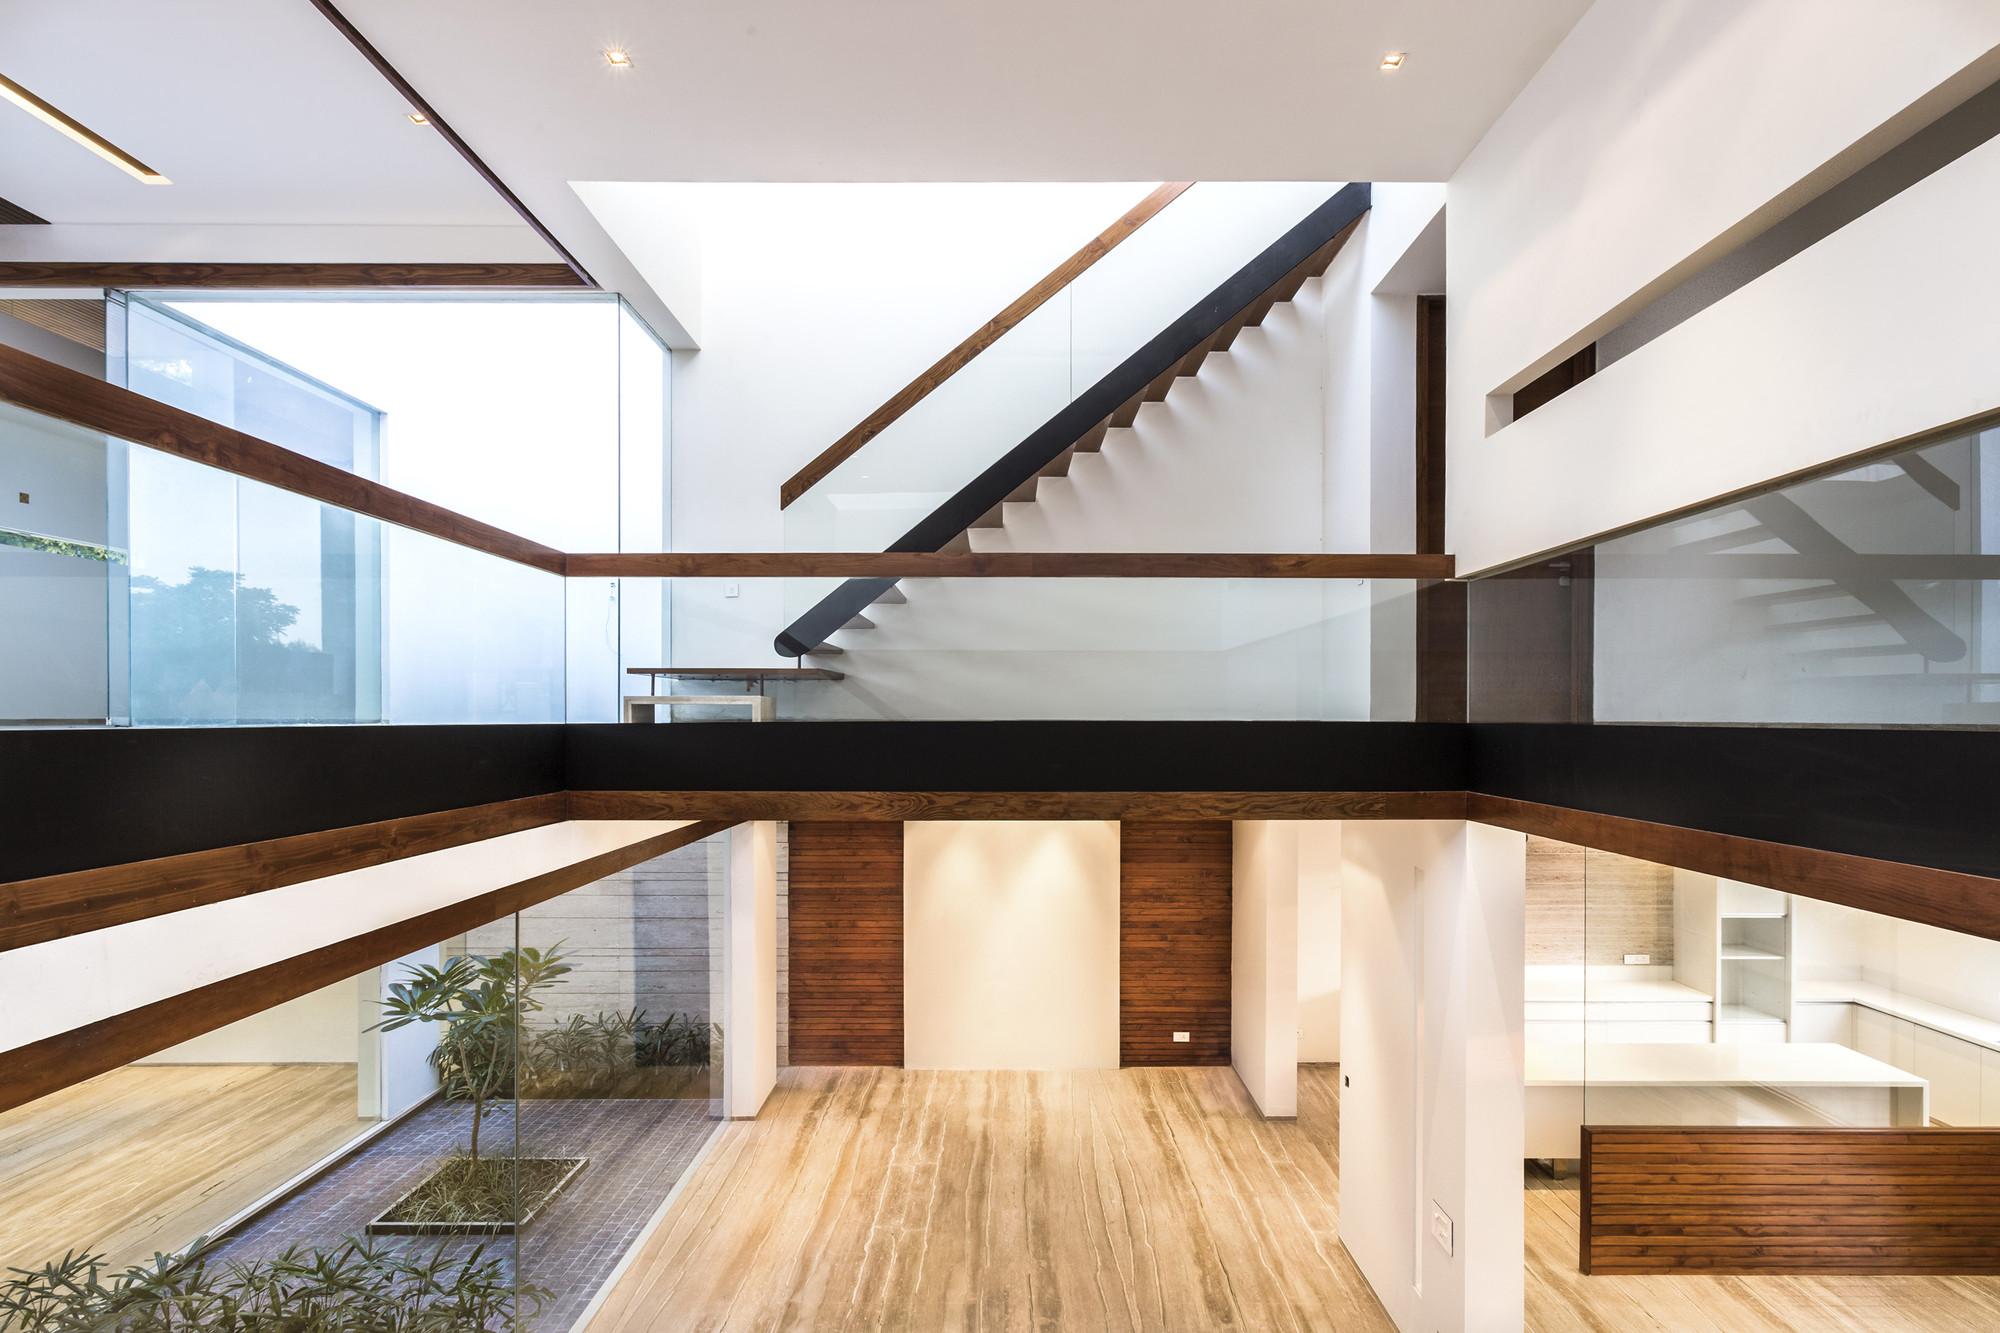 House in Mohali / Charged Voids | ArchDaily